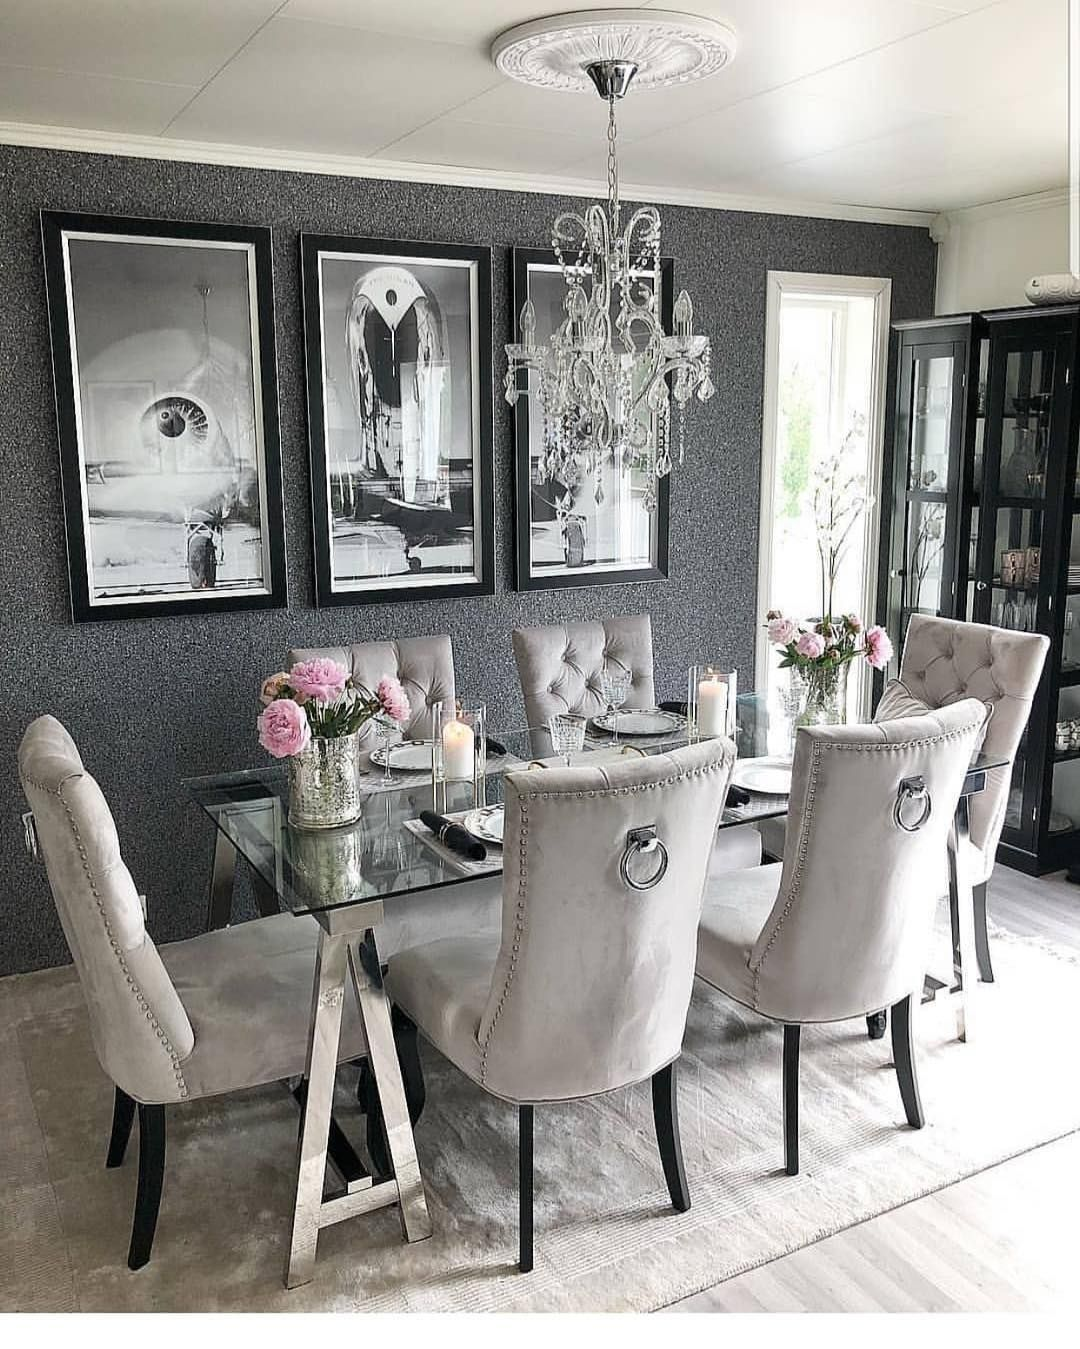 Home Decor Inspiration On Instagram How Gorgeous Is This Dining Room Follow Inspirationbyblan Grey Dining Room Dining Room Design Dinning Room Decor